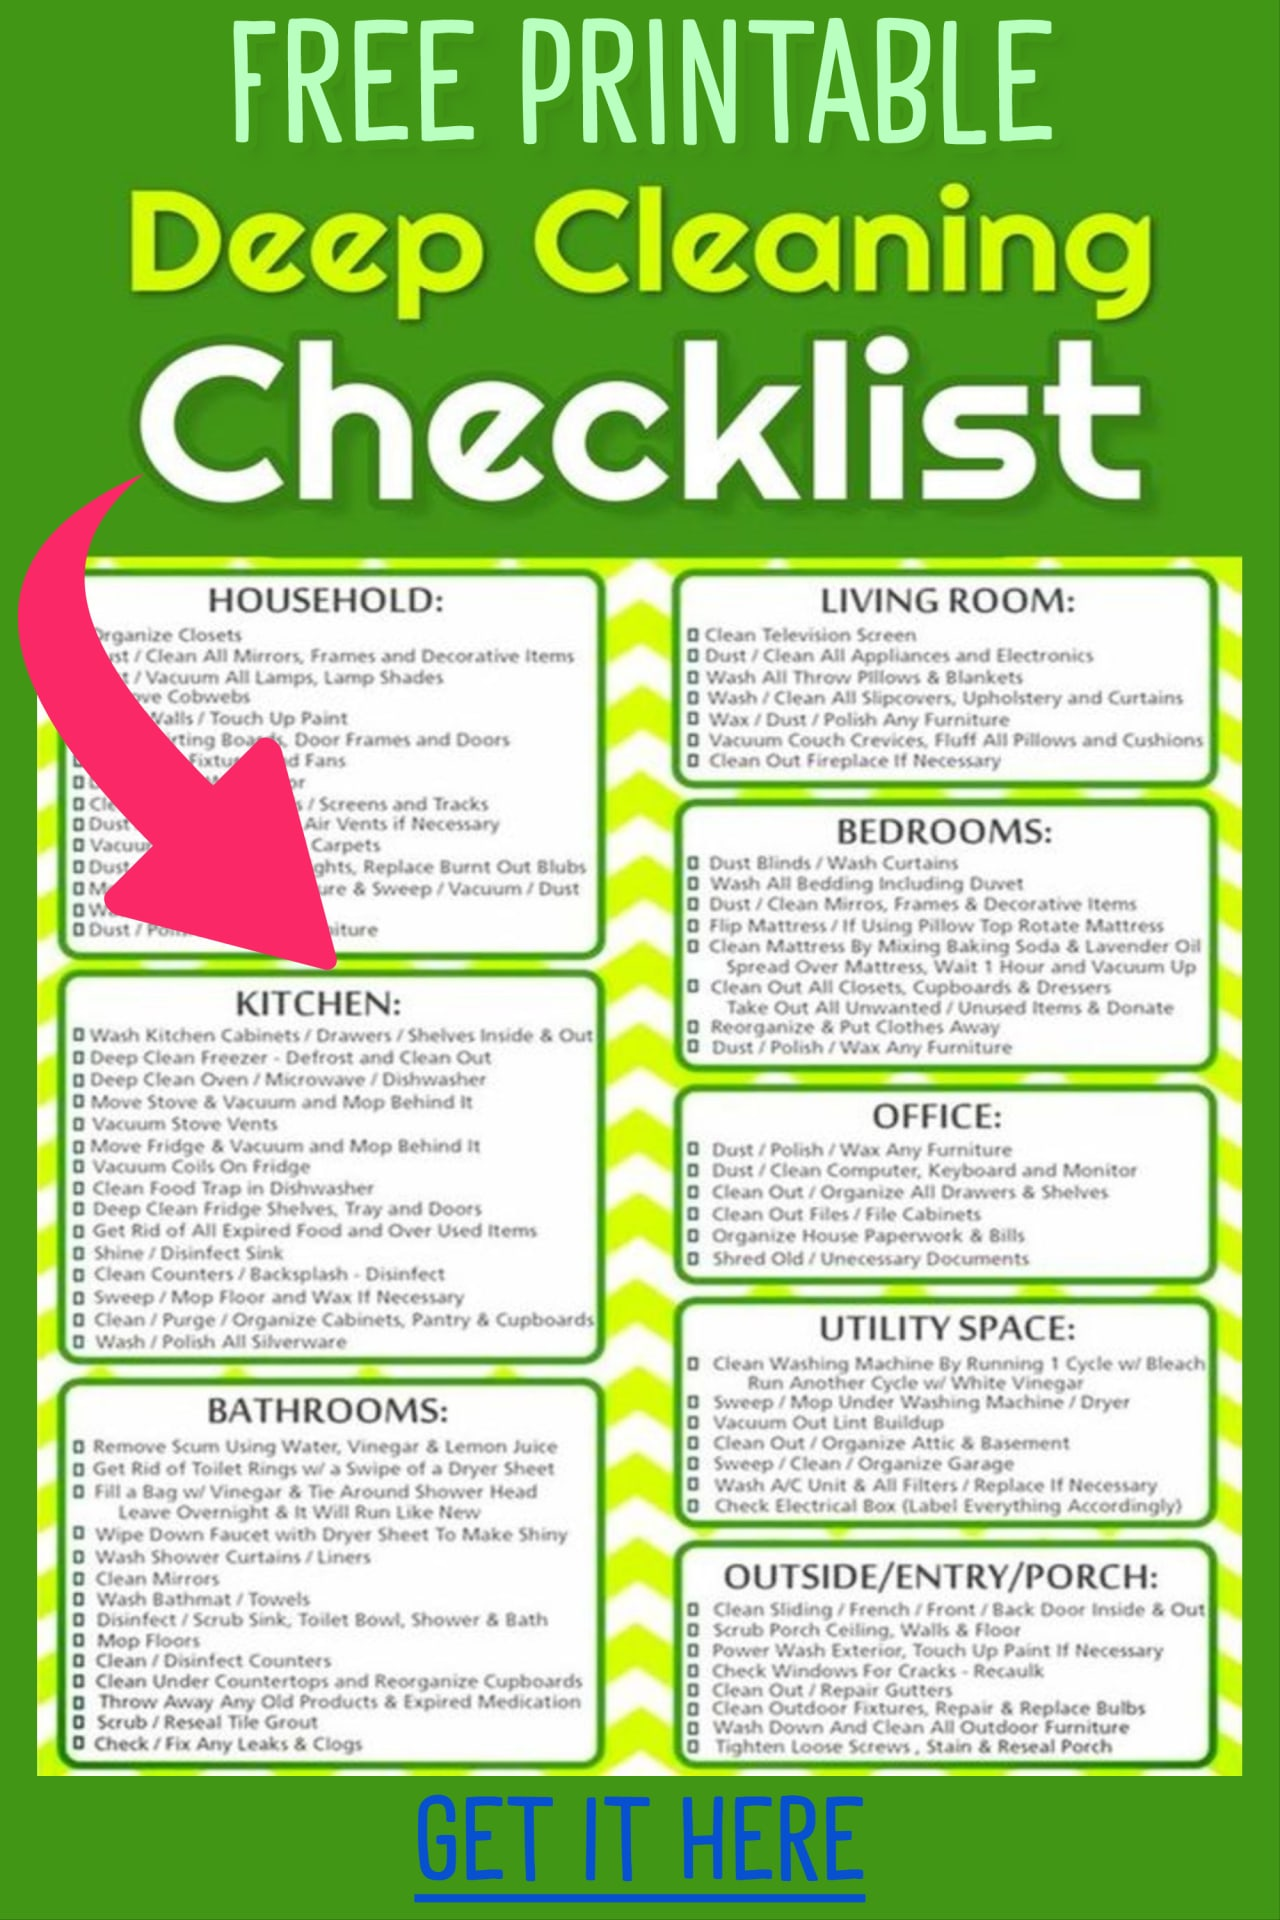 Deep cleaning schedule printable checklist - deep cleaning house checklist free printable - weekly, monthly and daily chores to keep house clean - daily cleaning routines for busy working moms